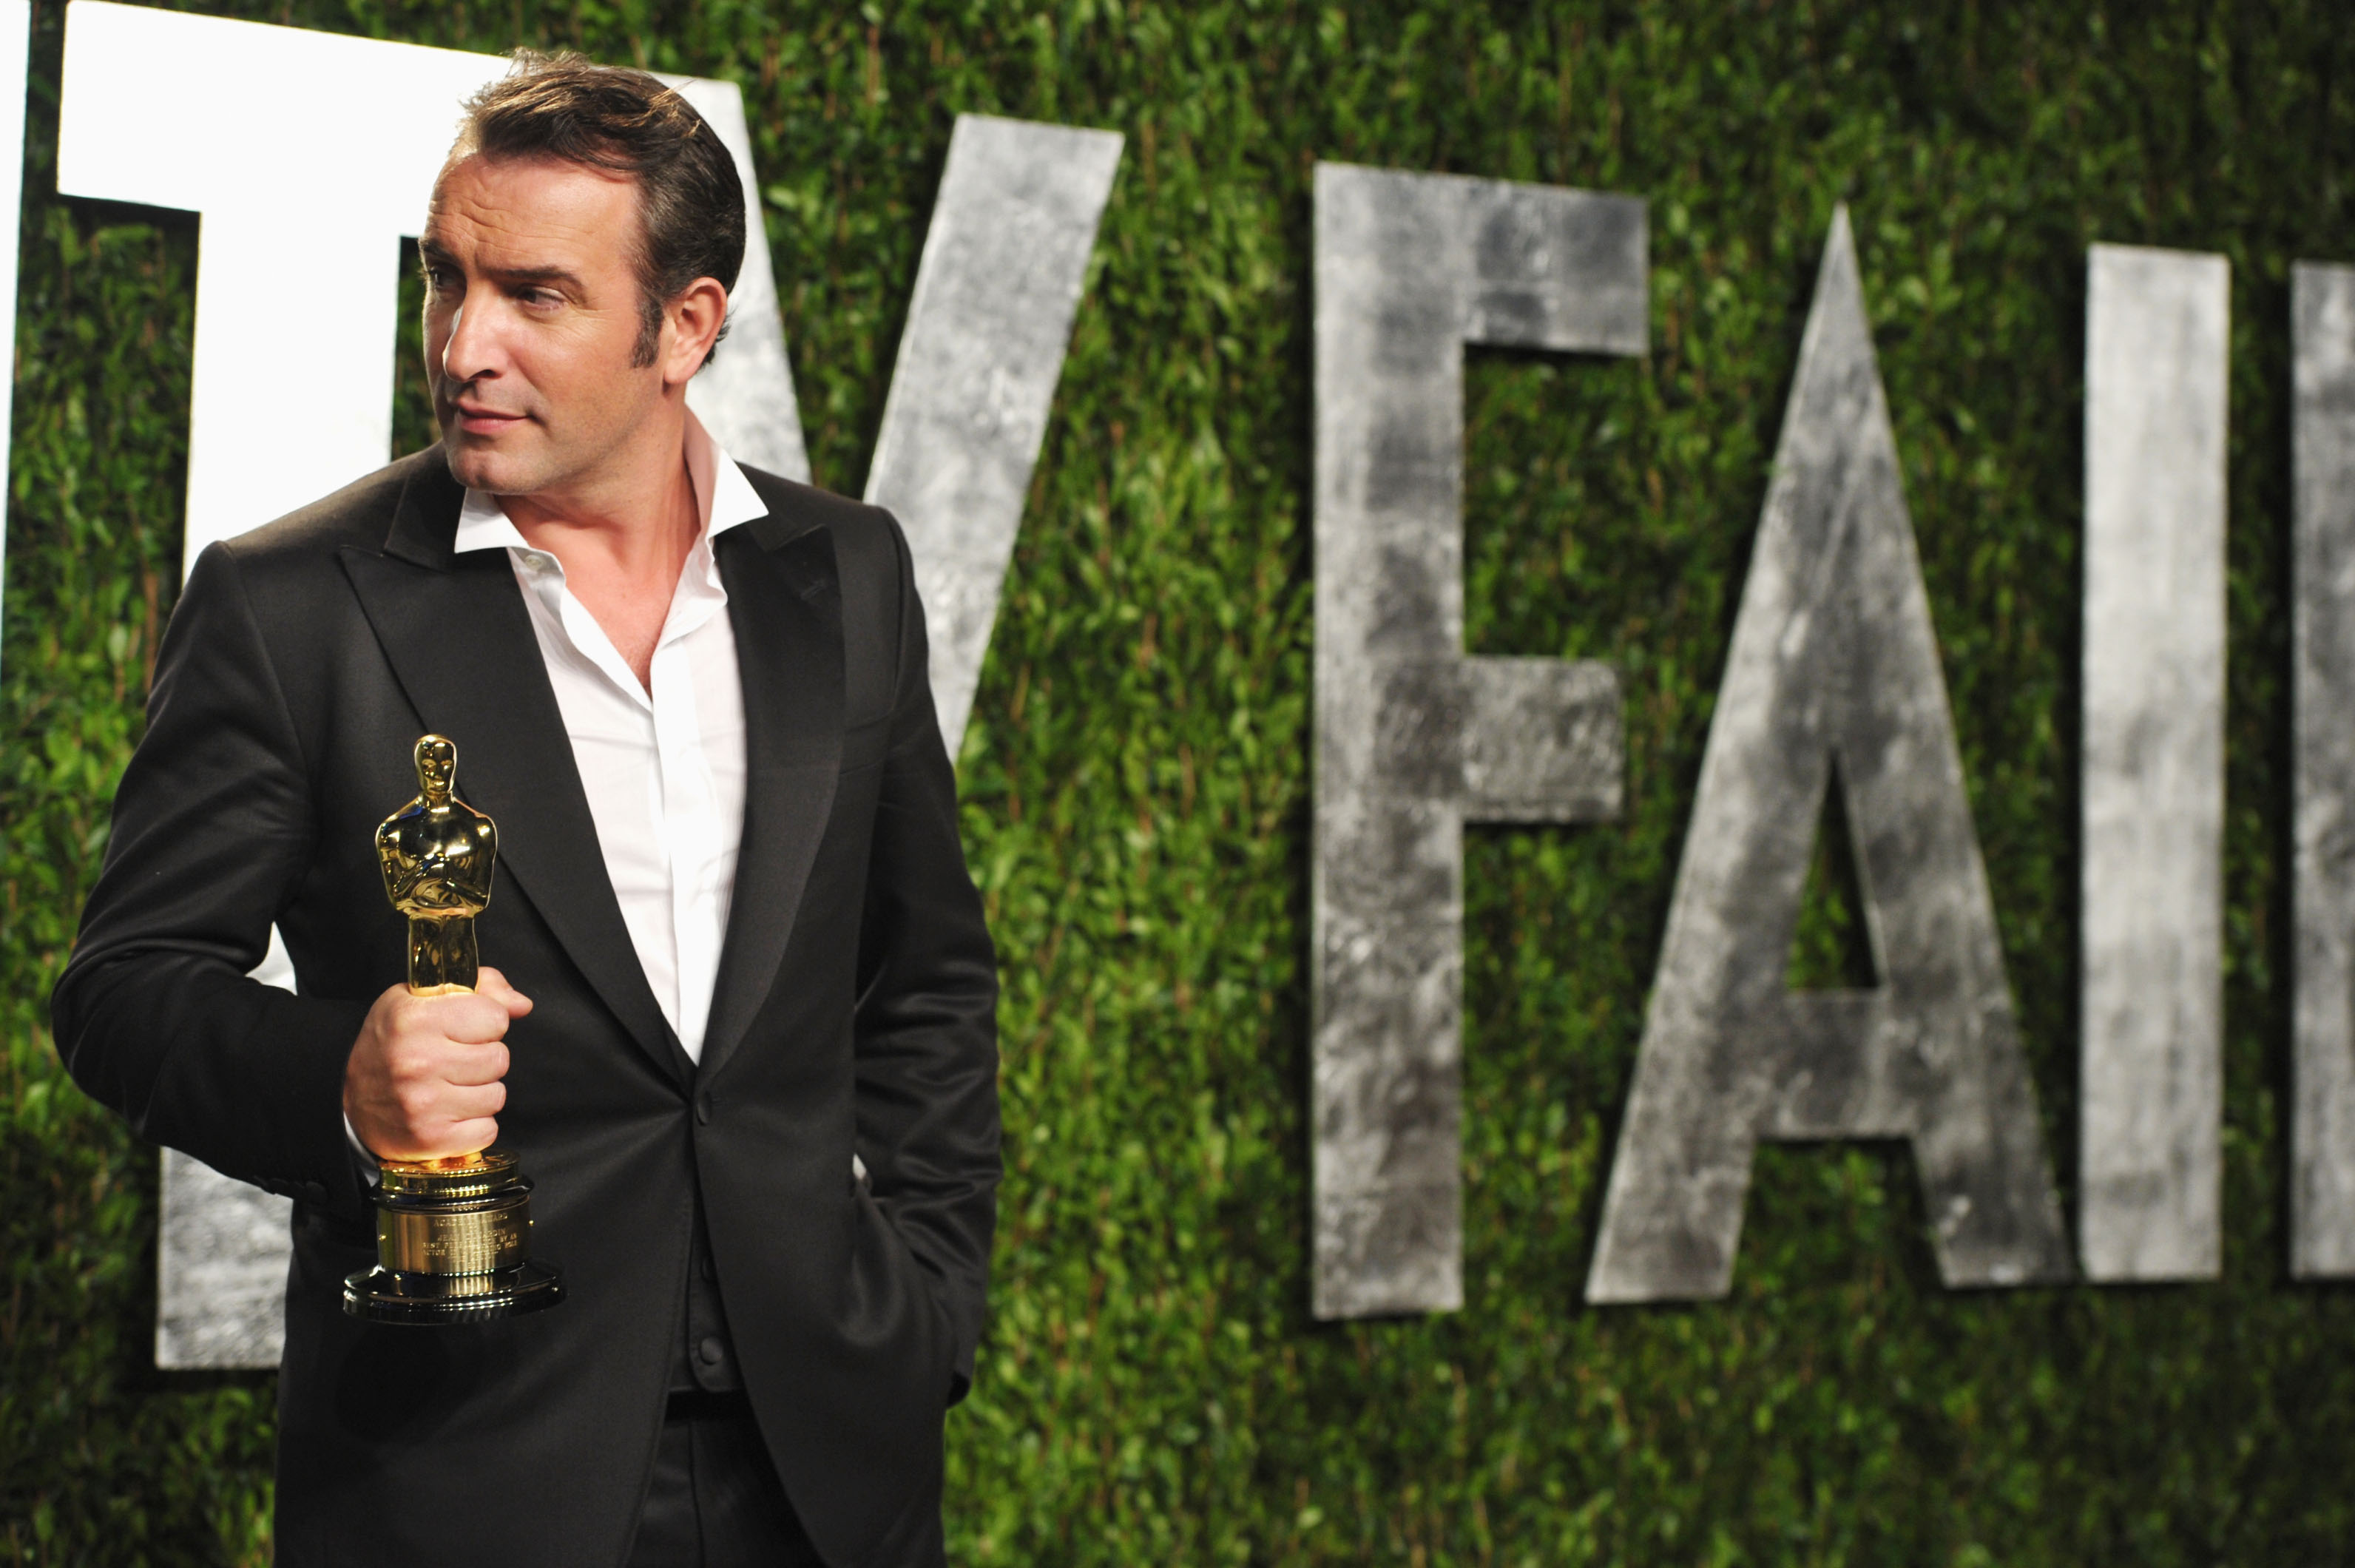 Jean dujardin weight loss 2018 for Dujardin 2018